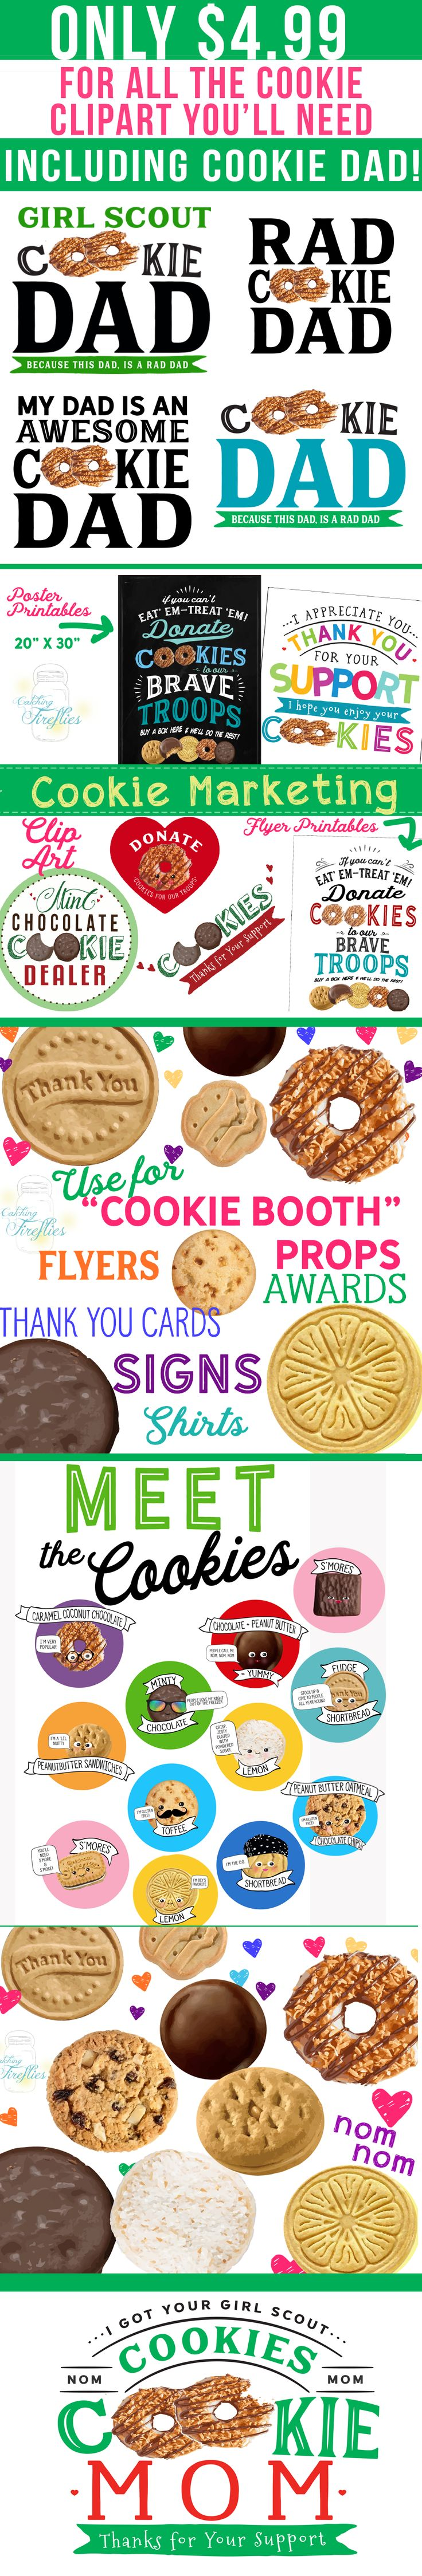 girl guide cookie clip art